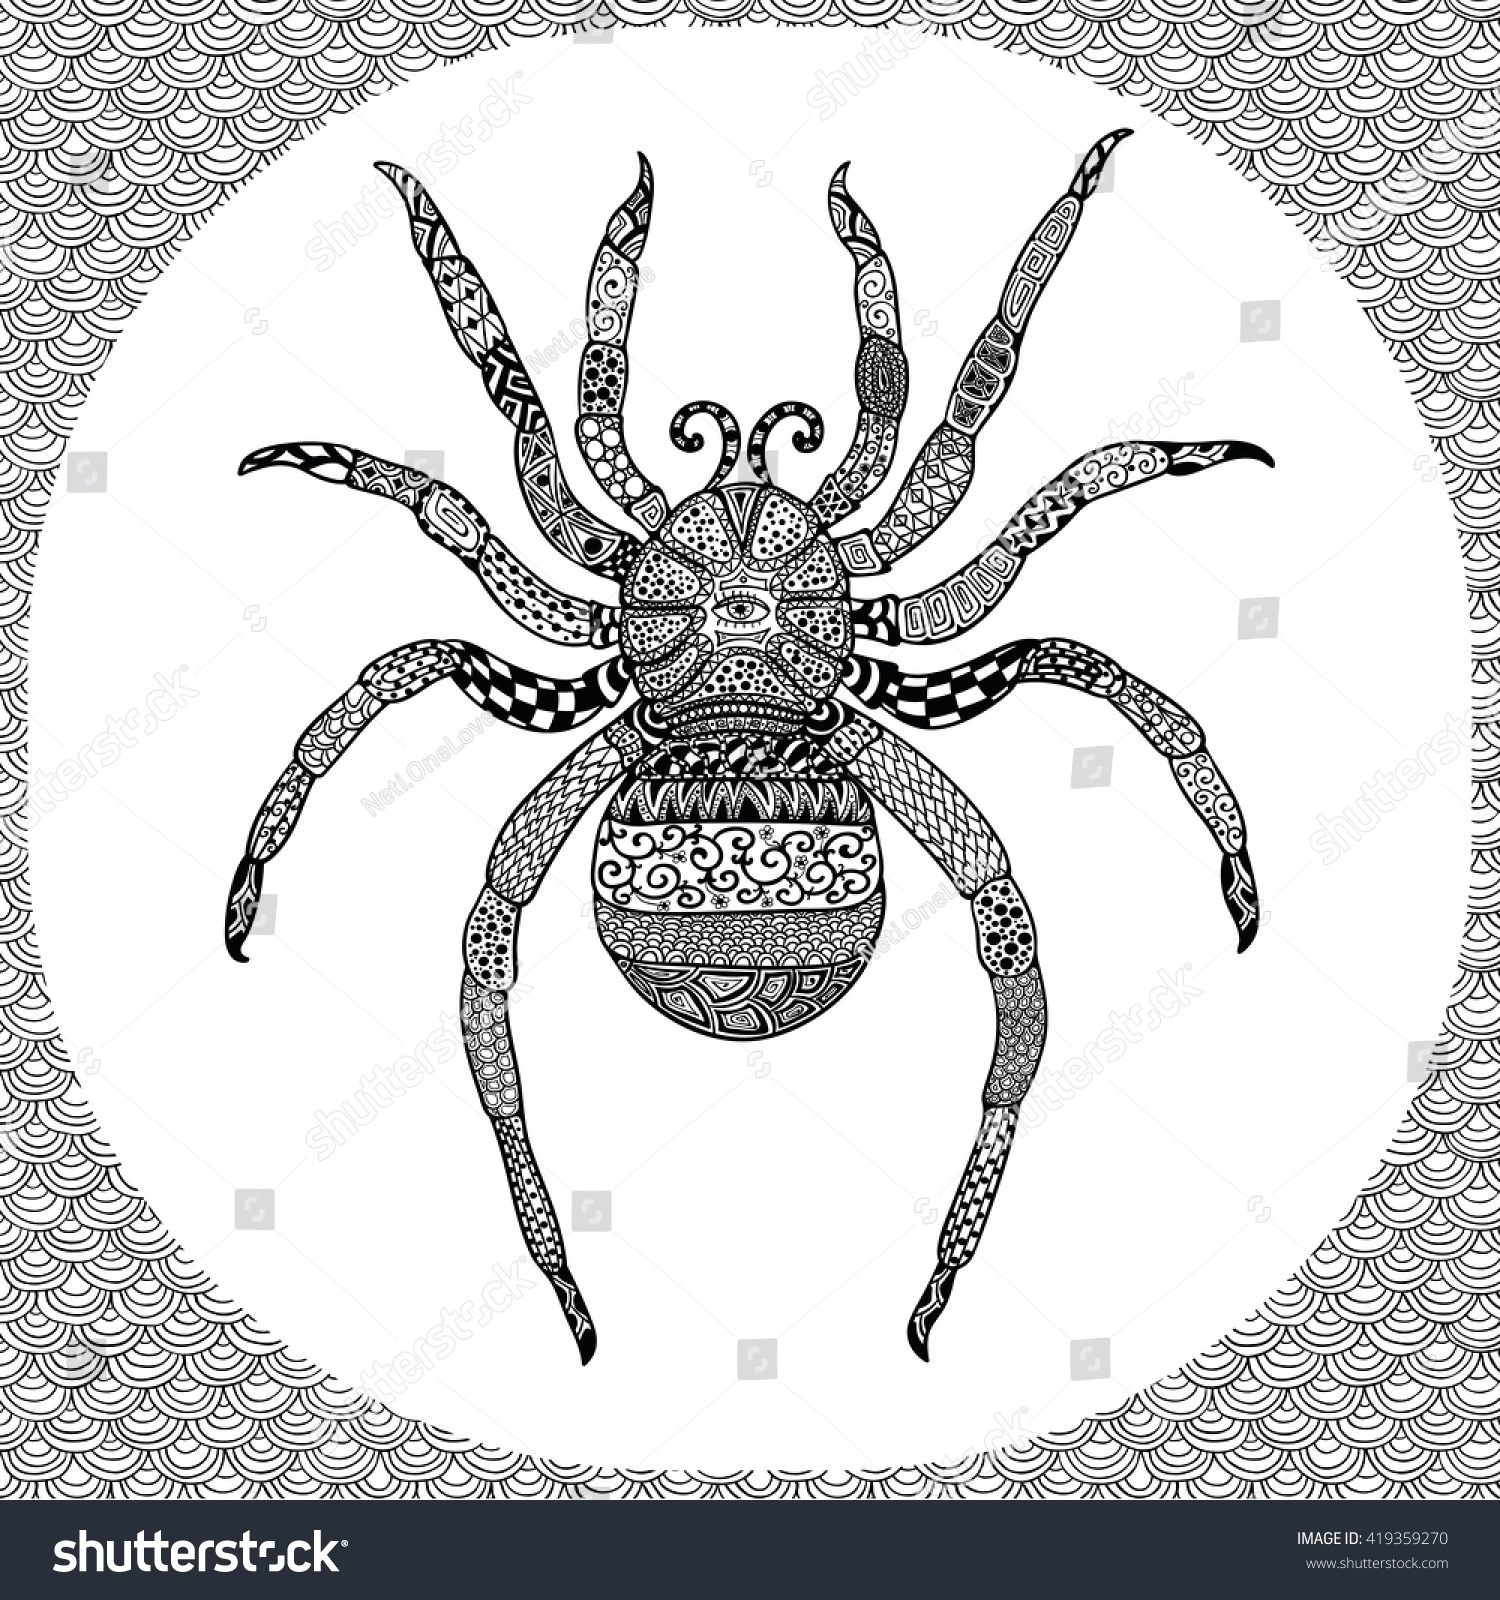 Coloring Page Of Black Spider With Hand Drawn Patterns Zentangle Vector Illustration Tribal Totem